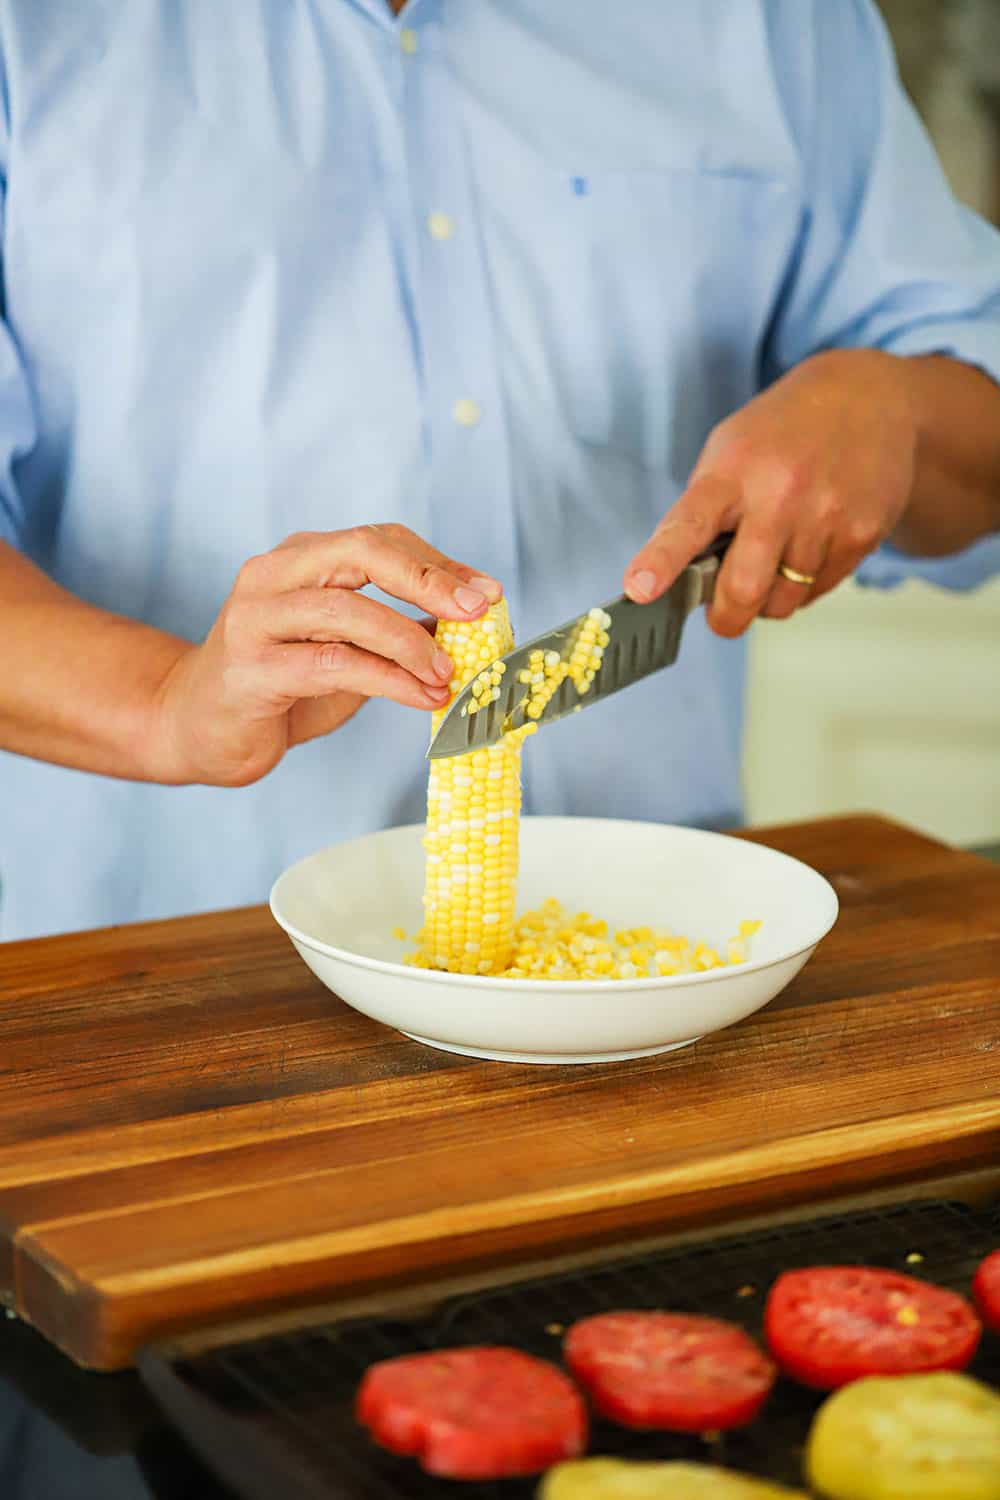 A person holding a ear of fresh corn upright in a bowl and using a knife to cut off the kernels.